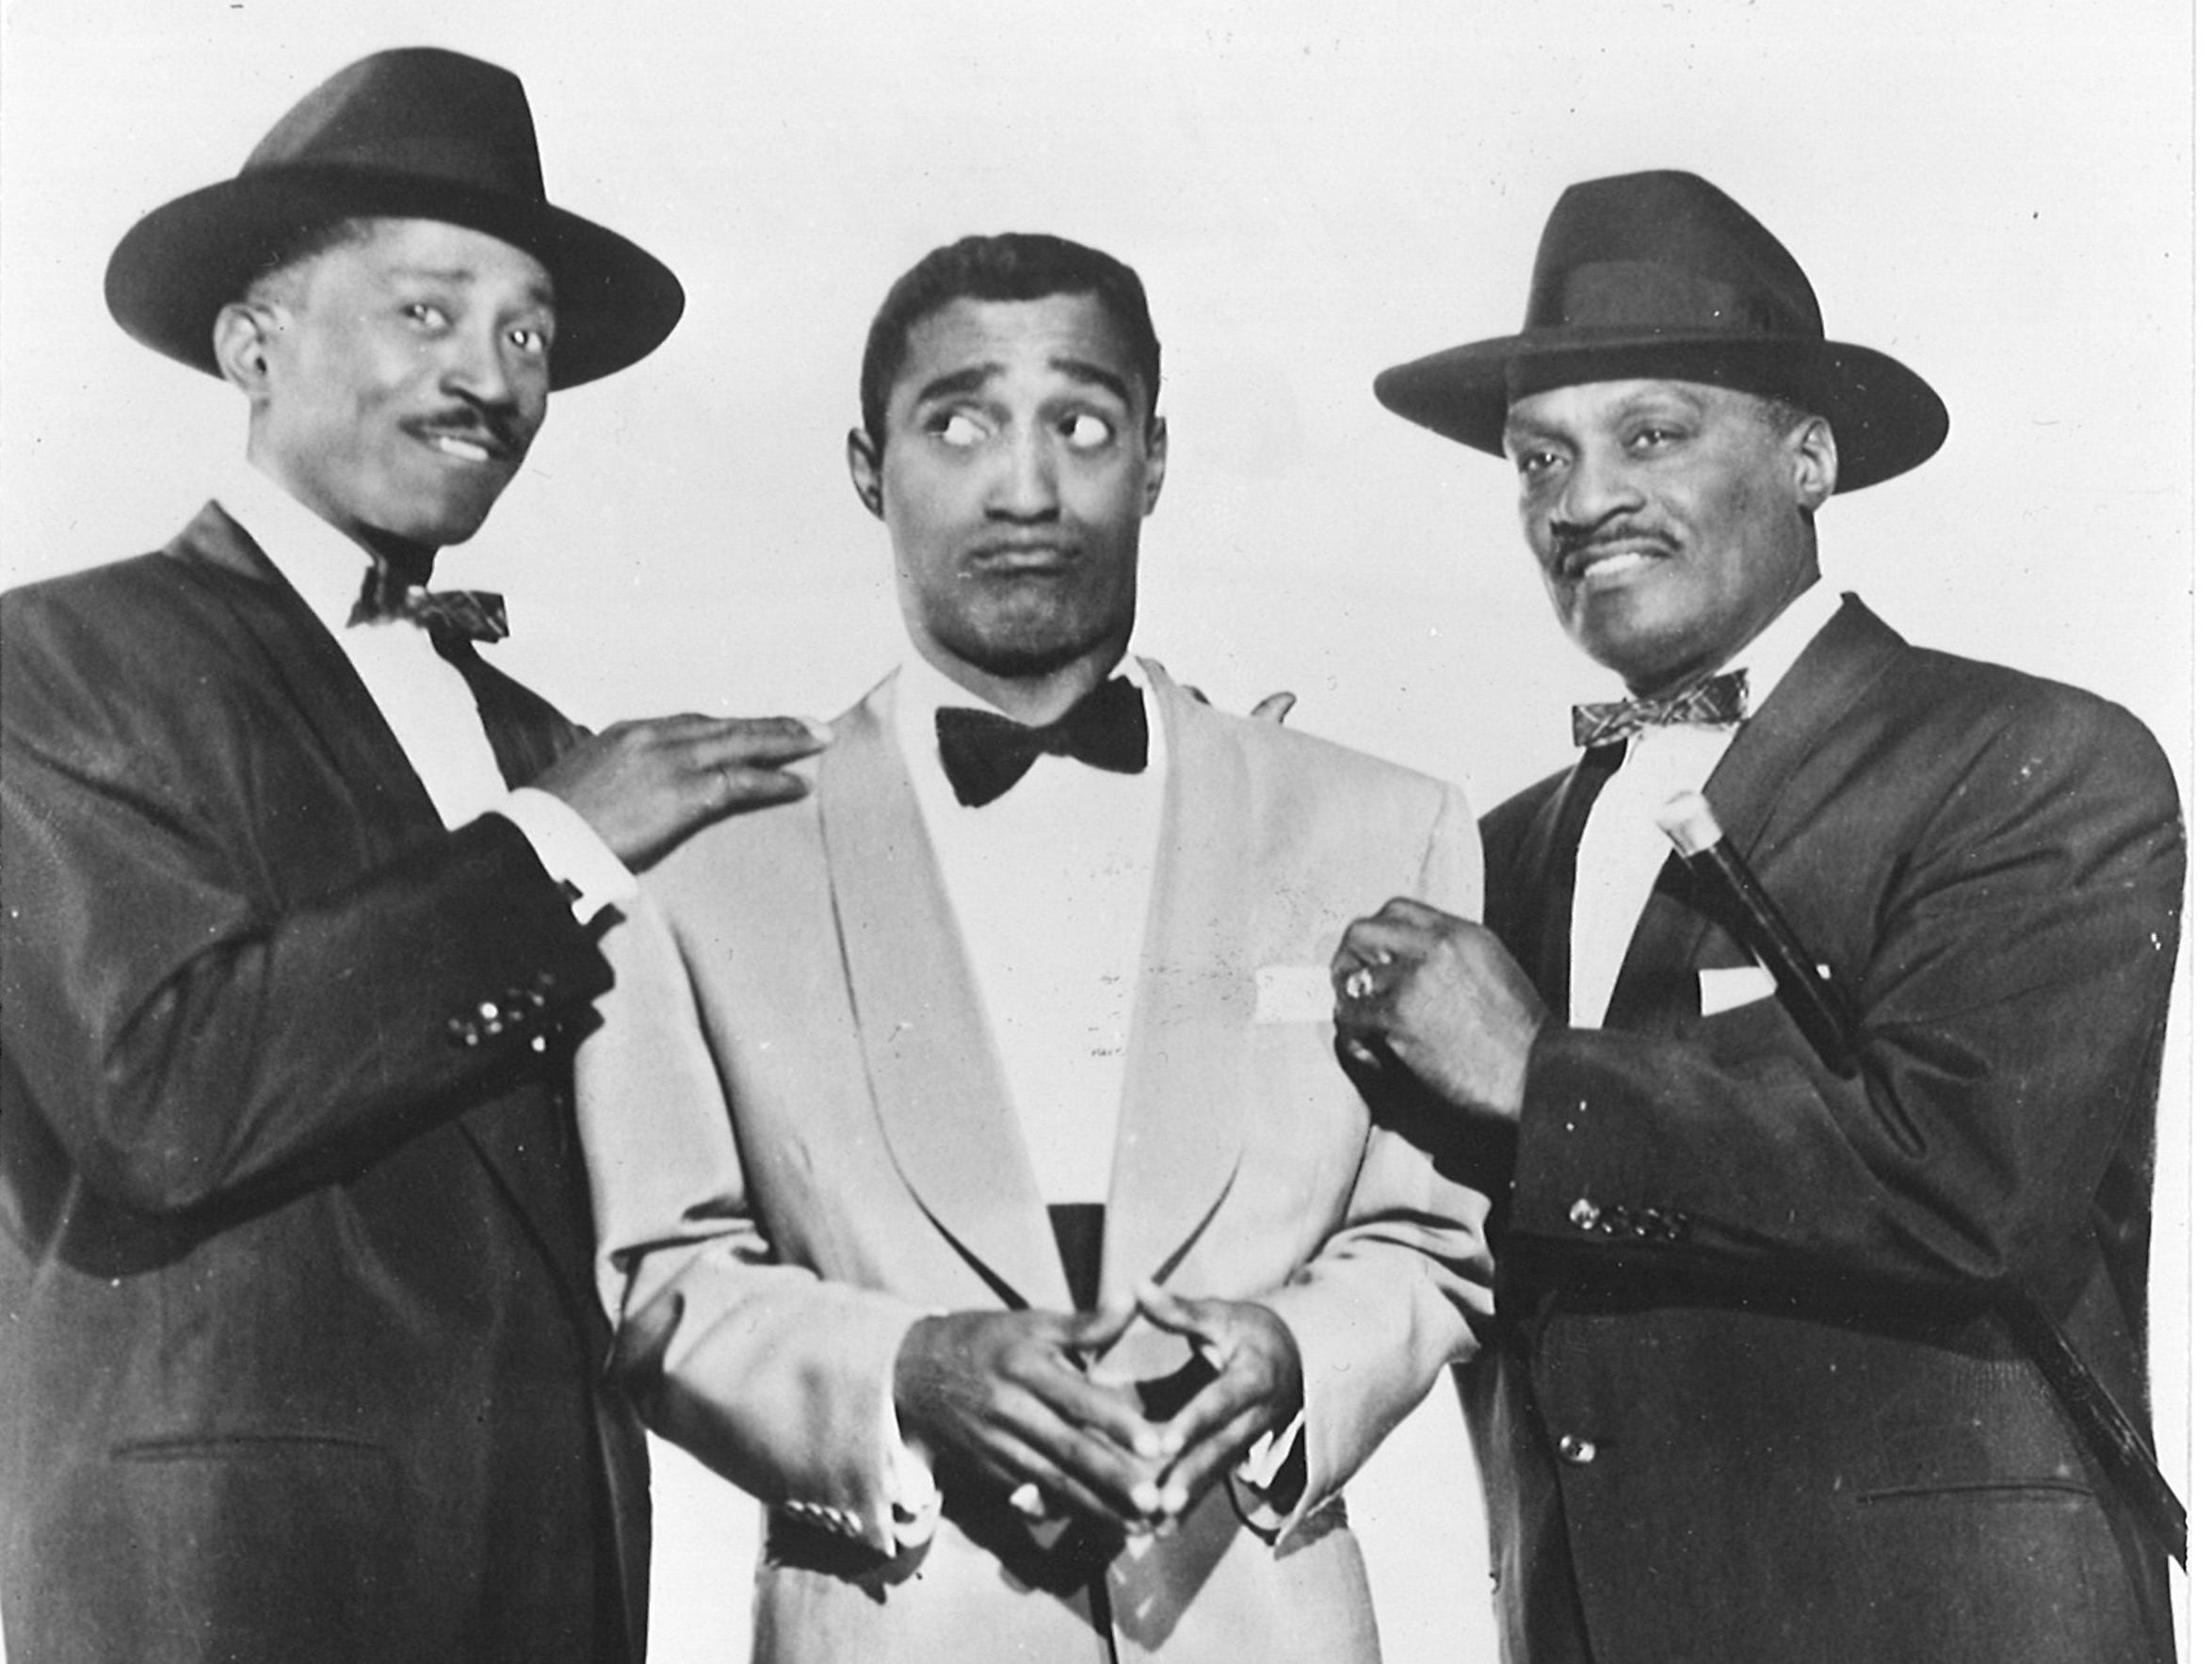 Sammy Davis Jr. performed with his uncle and father